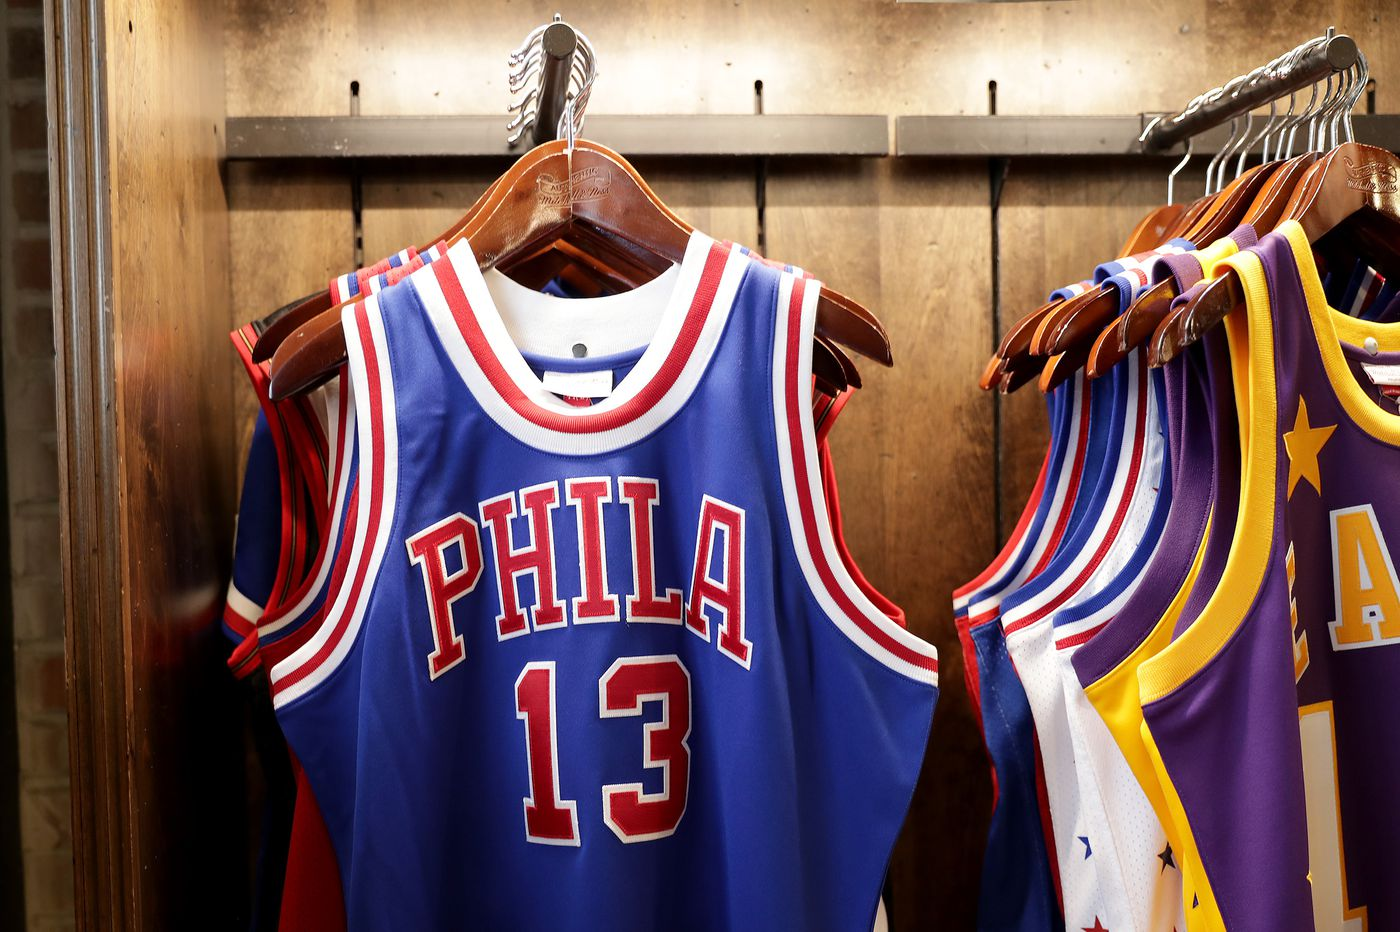 competitive price 3b111 8f9b1 The best jersey ever worn by a Philly team? You tell us.